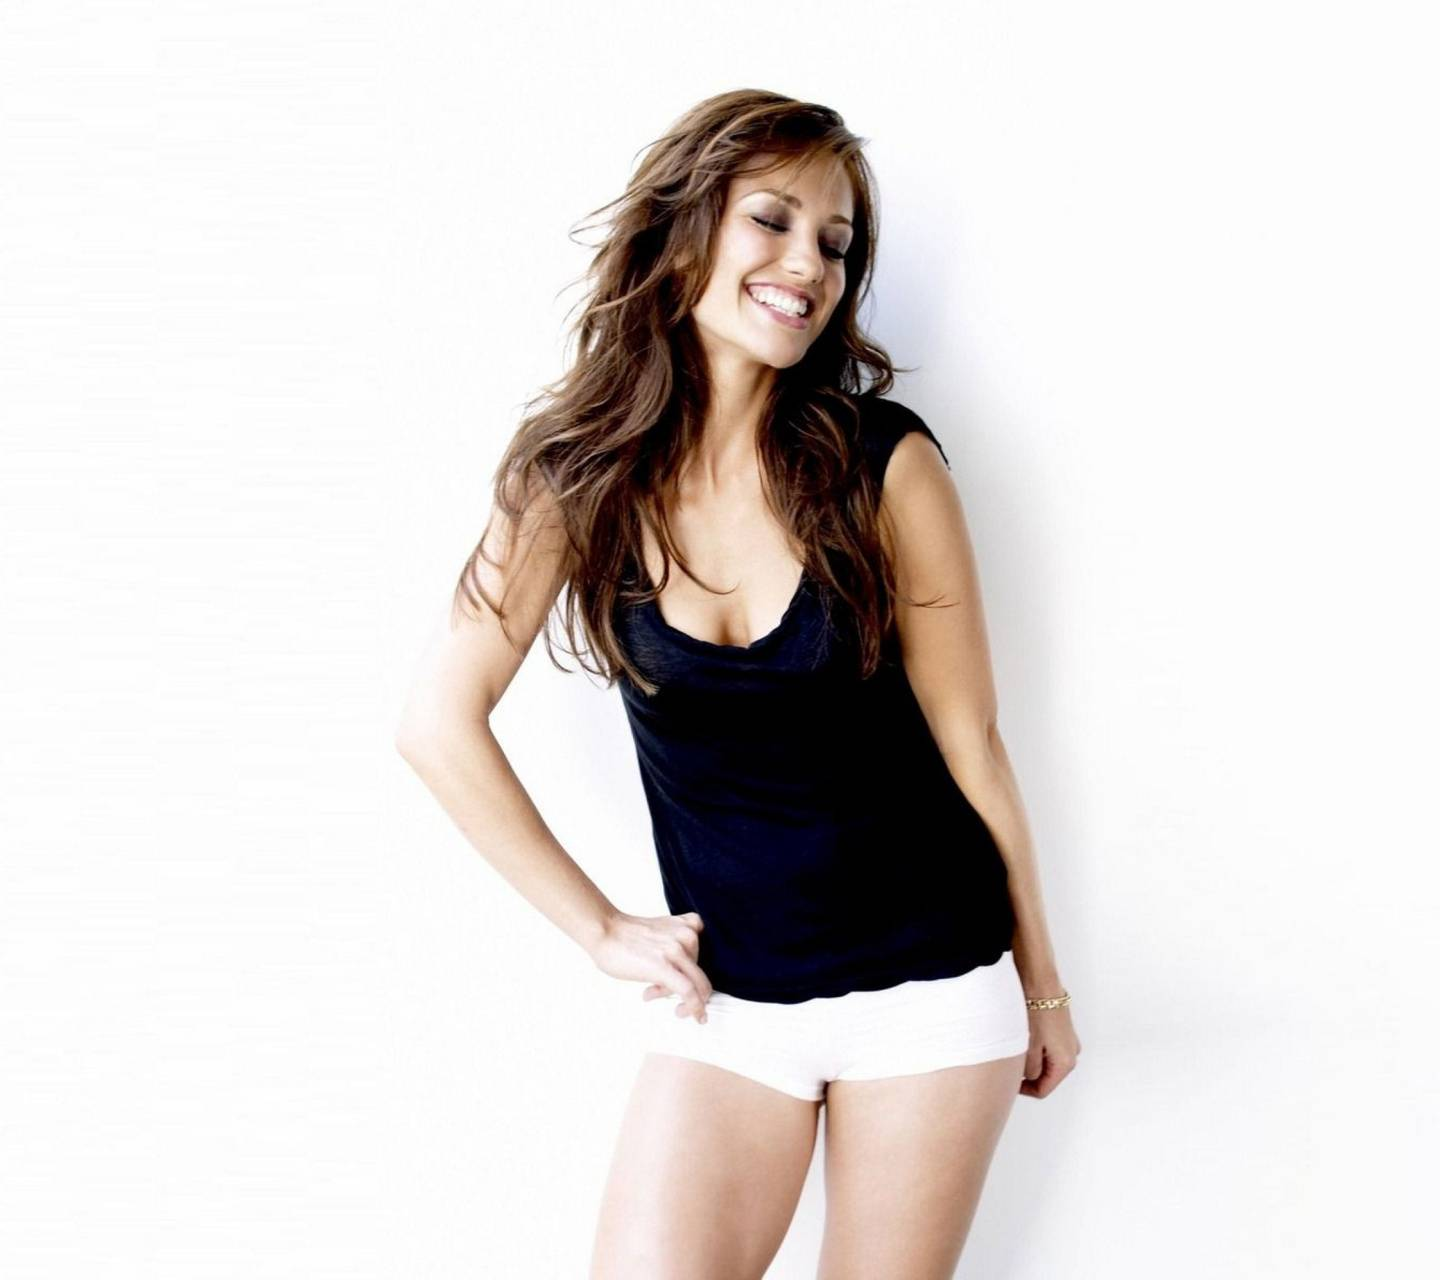 Minka Kelly Wallpaper By Newsroom A8 Free On Zedge